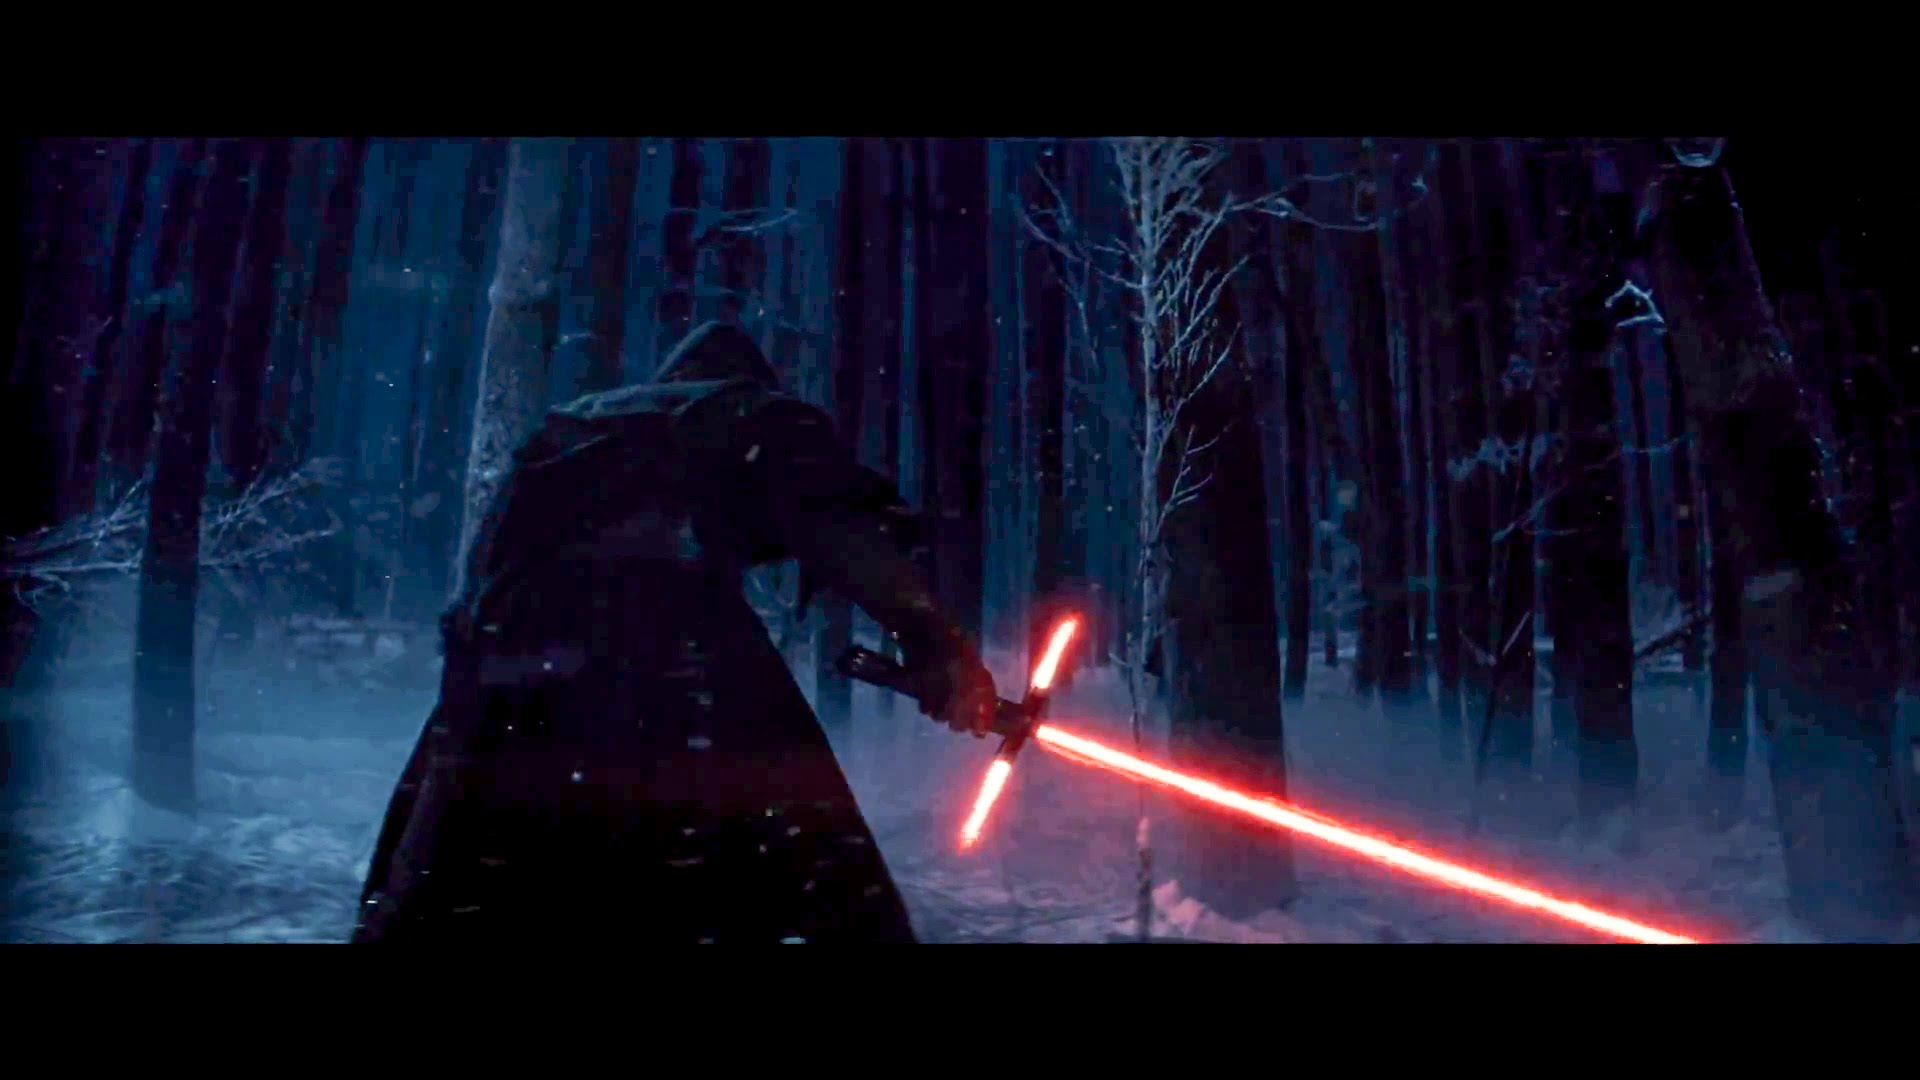 Star wars the force awakens wallpapers high quality - Star wars the force awakens desktop wallpaper ...